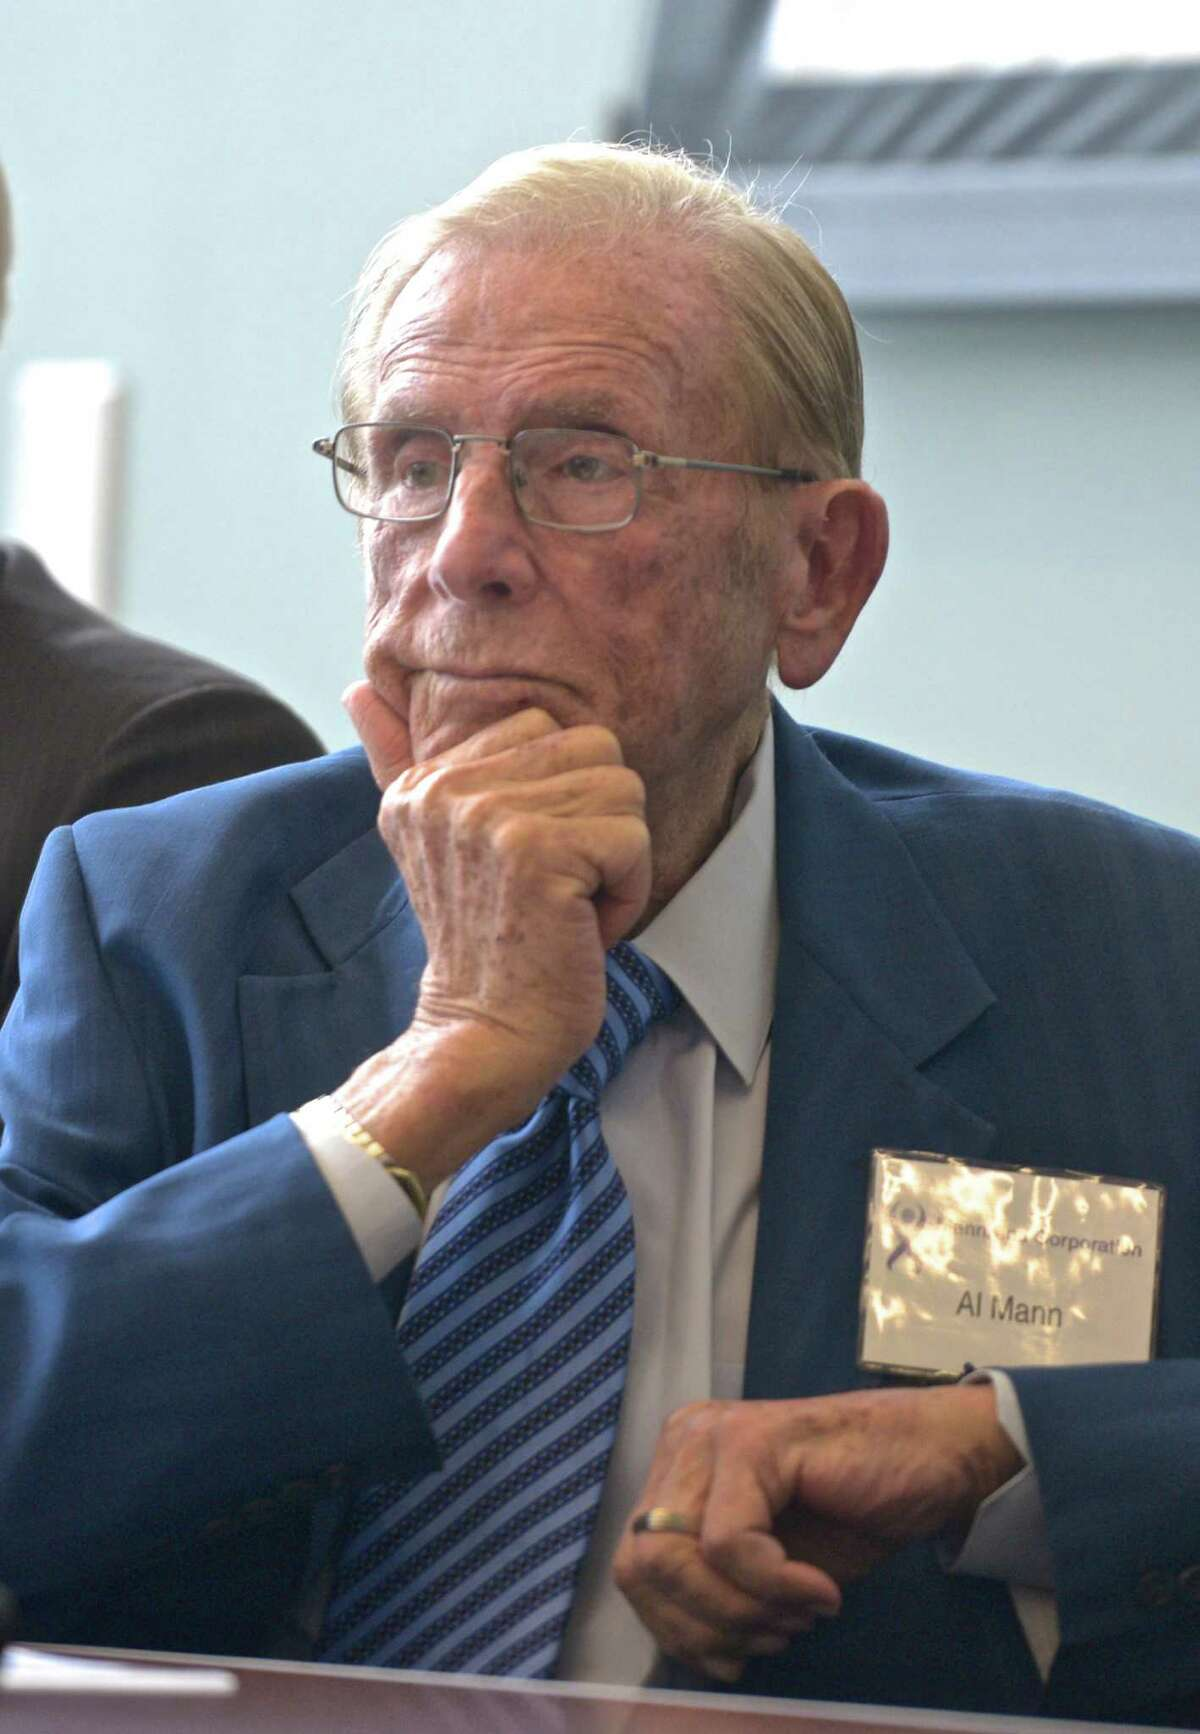 Alfred Mann, founder of MannKind Corporation during the companies annual stockholders meeting on Thursday, May 21, 2015, in Danbury, Conn. Mann died at age 90 in Las Vegas on Thursday, Feb. 25, 2016.